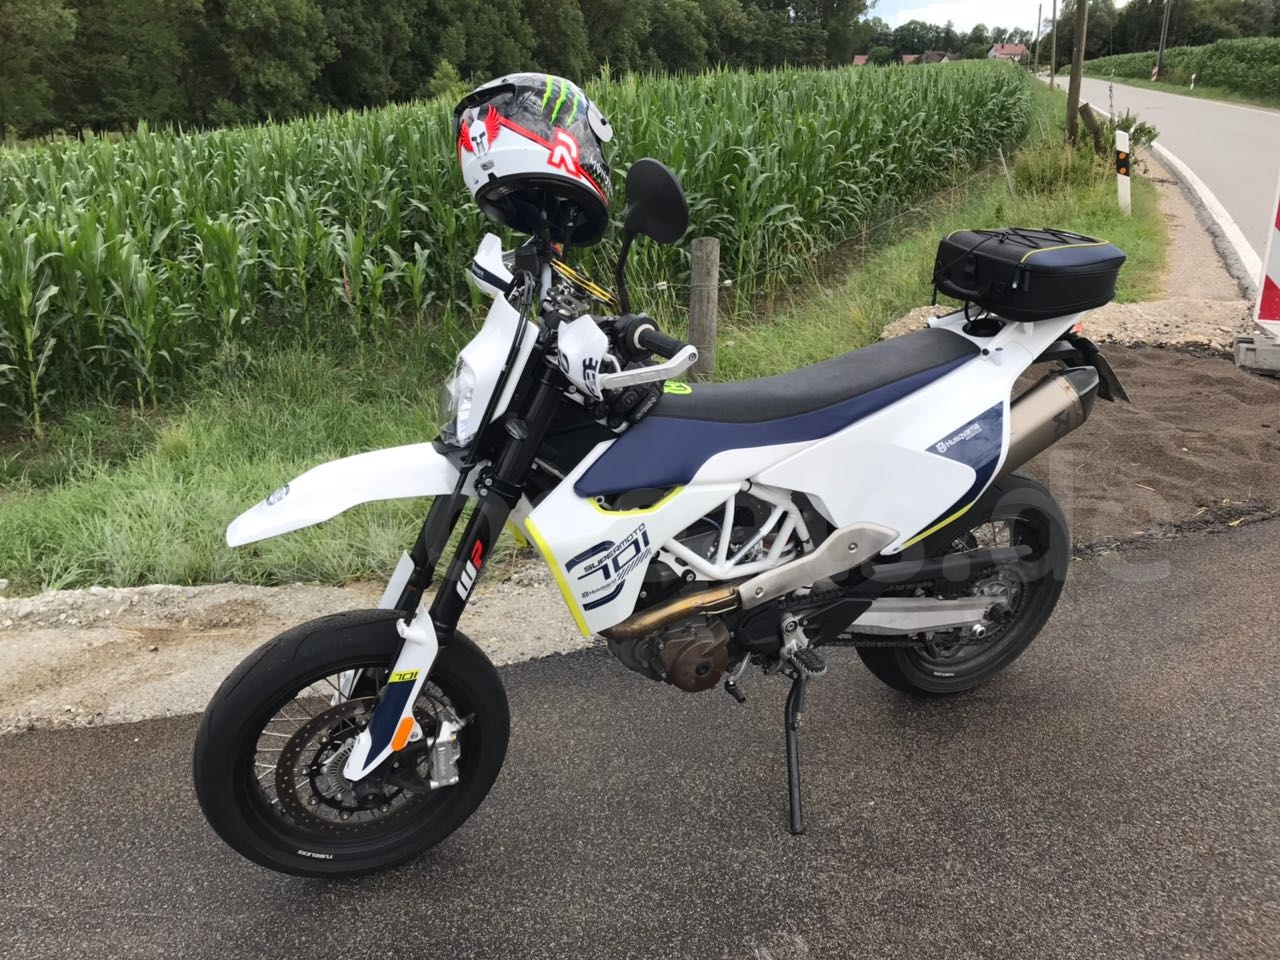 701Husqvarna SM by Bade (2)